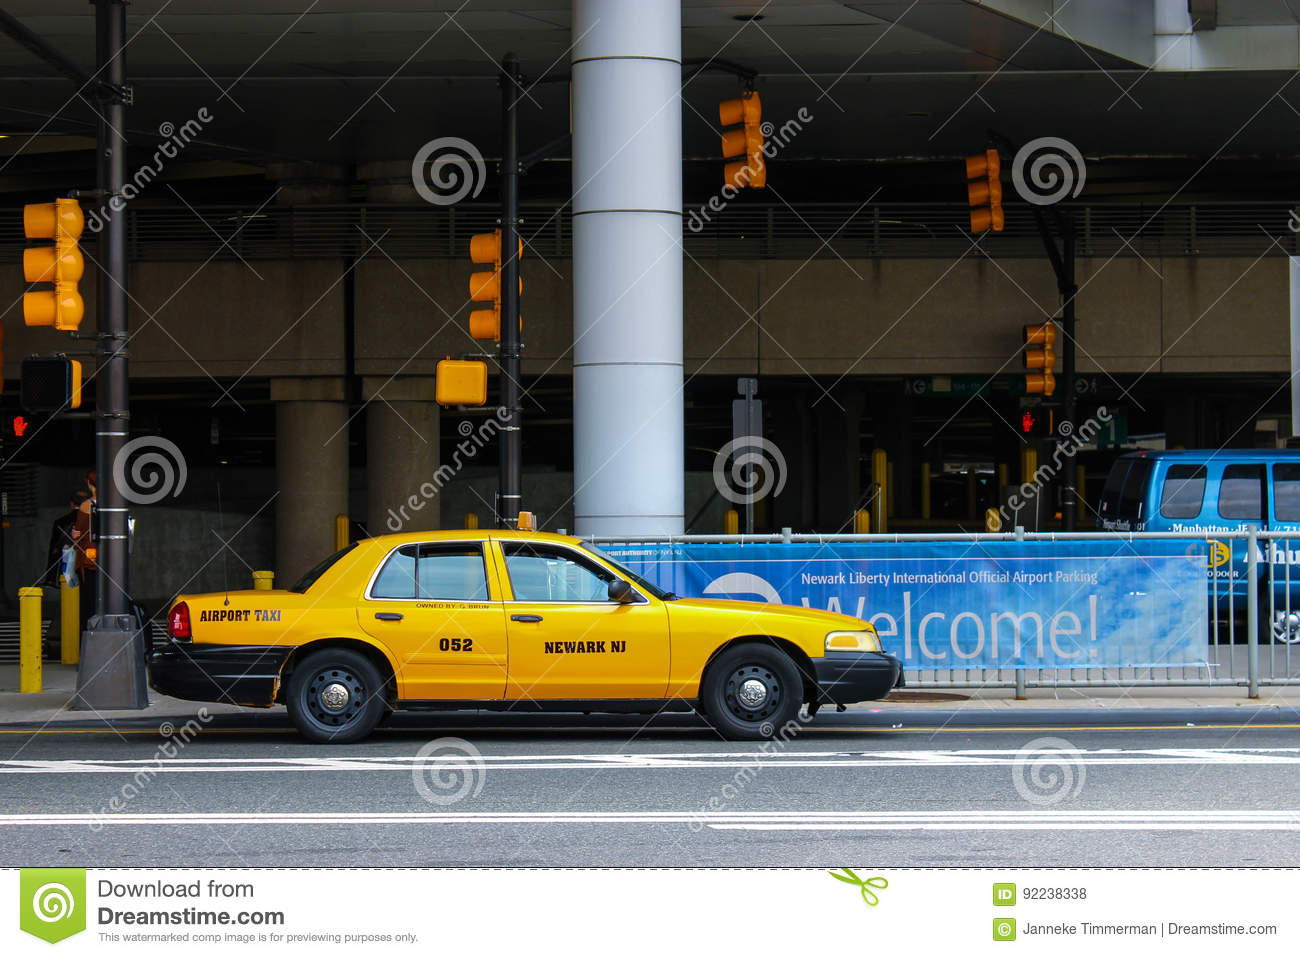 New Jersey cab editorial stock photo  Image of city, yellow